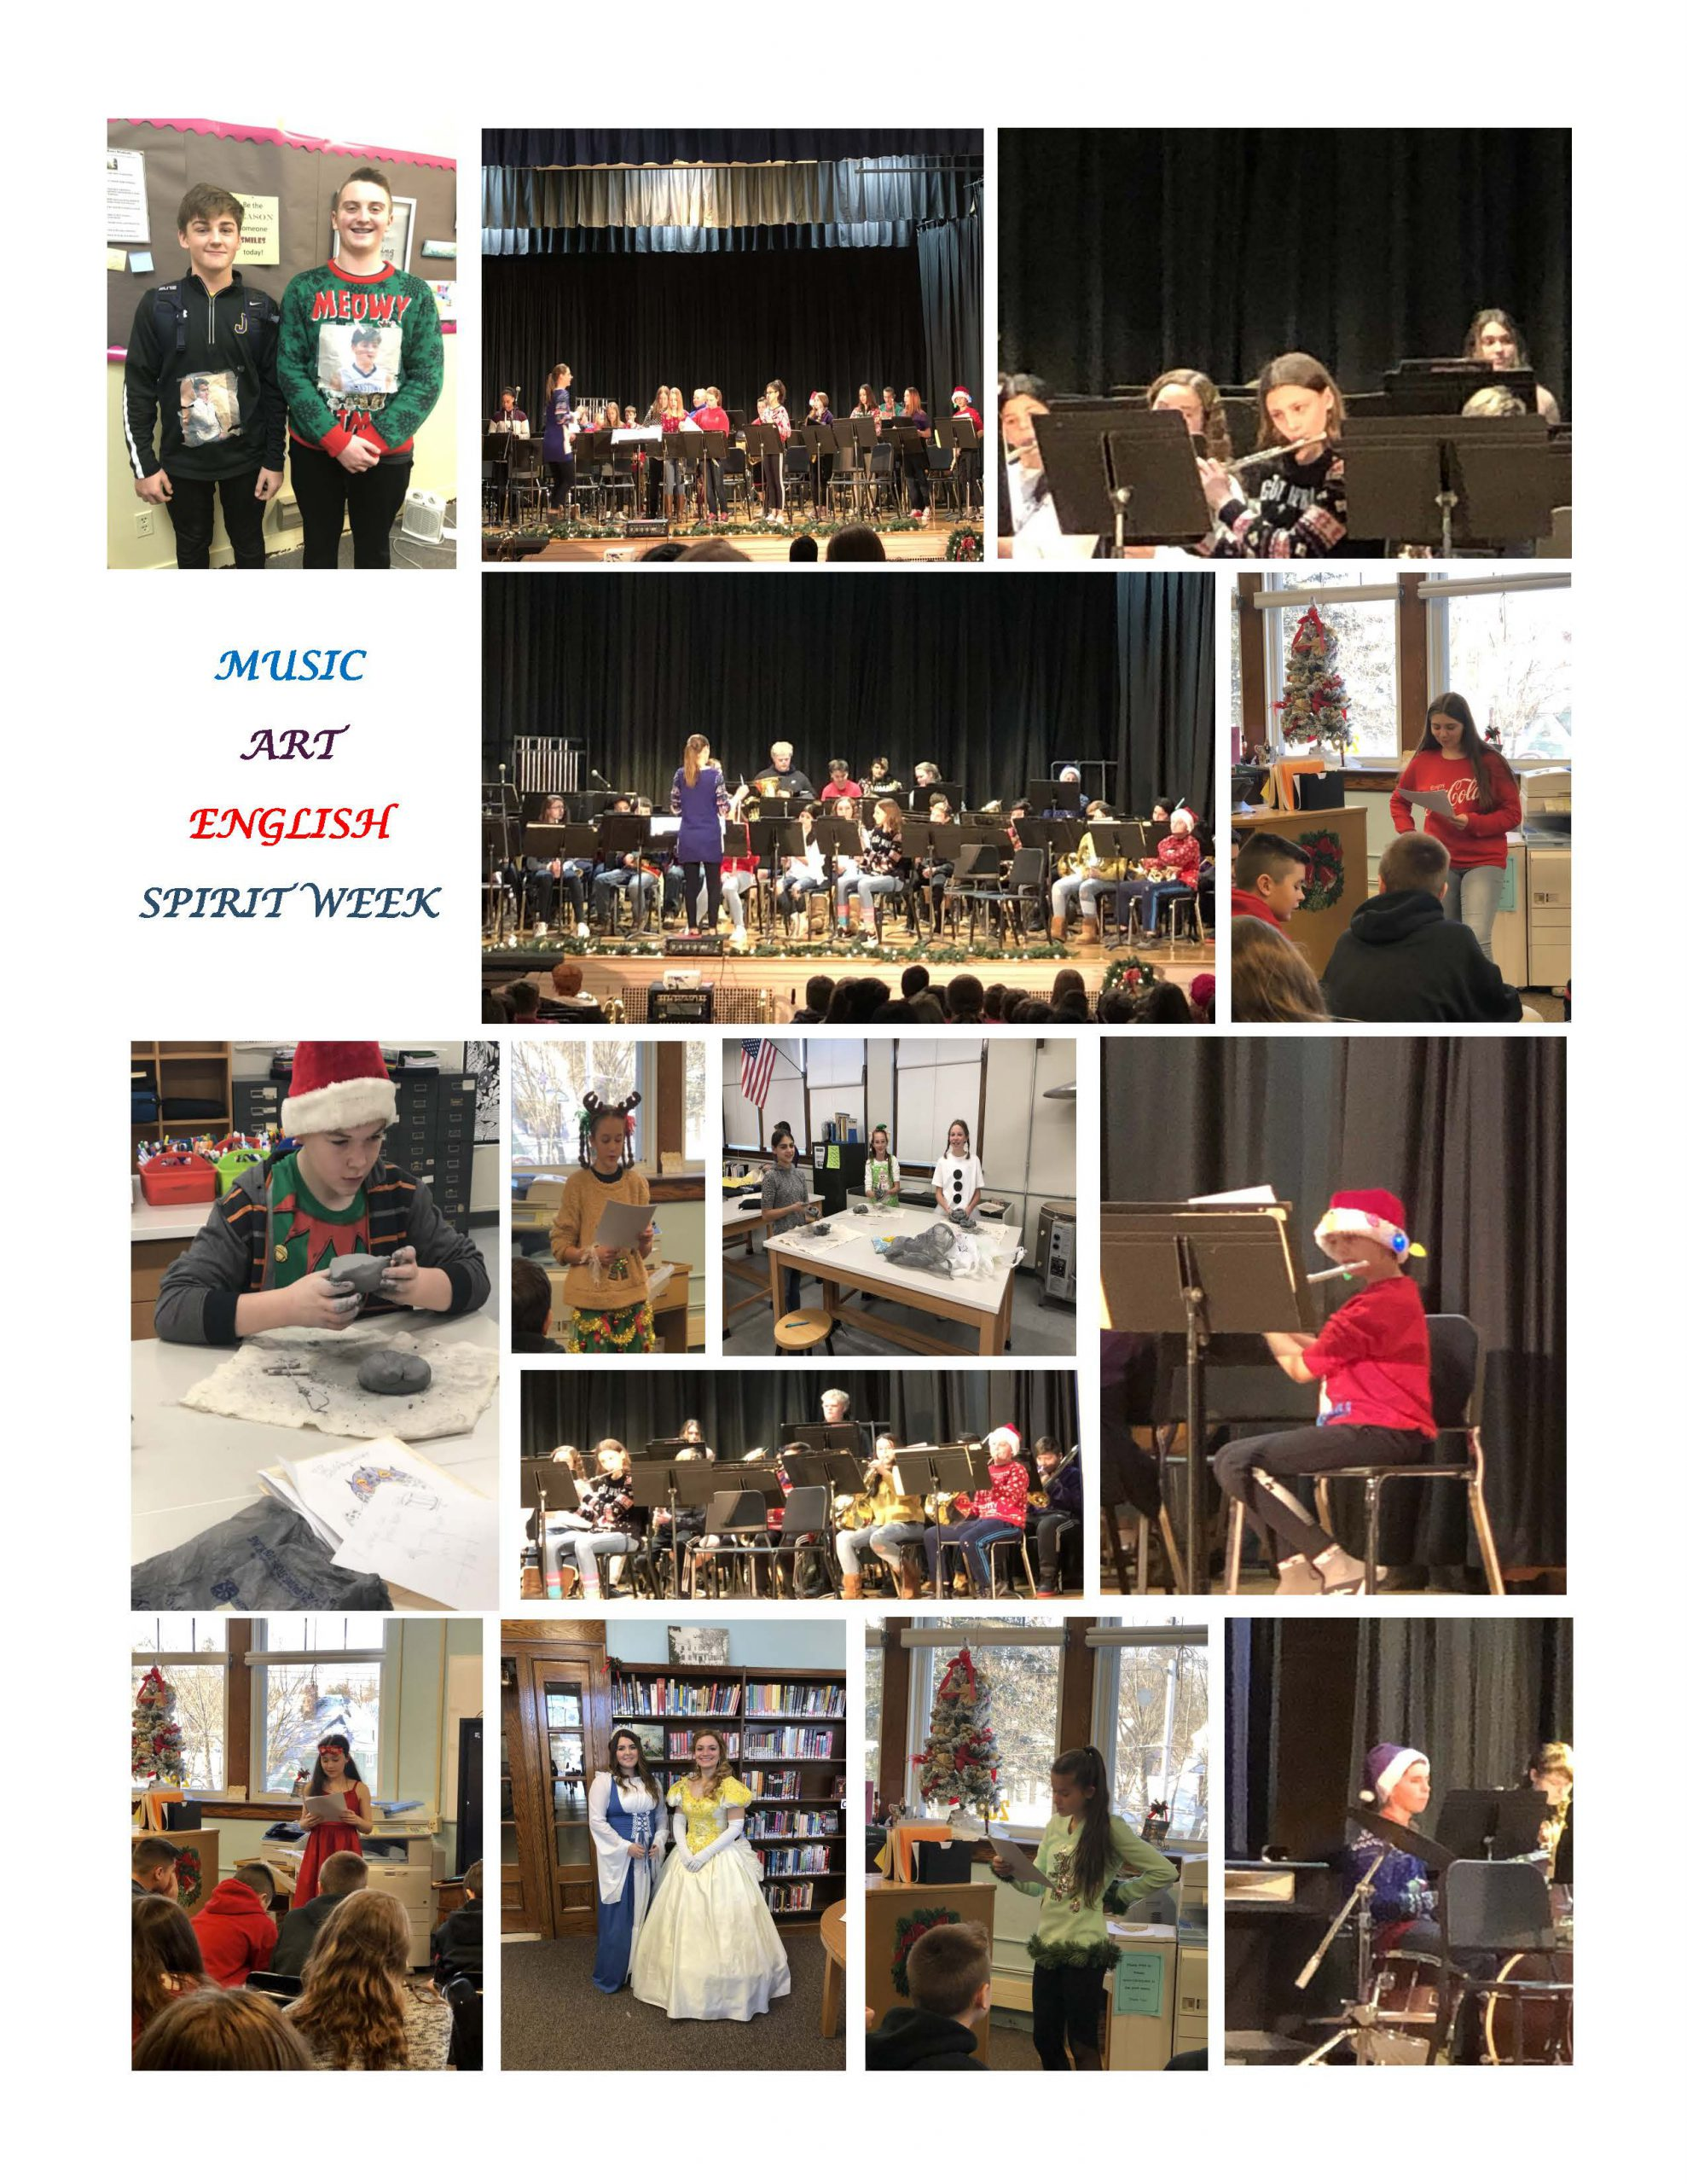 collage of photos of students playing instruments, working on art projects, dressed in costumes